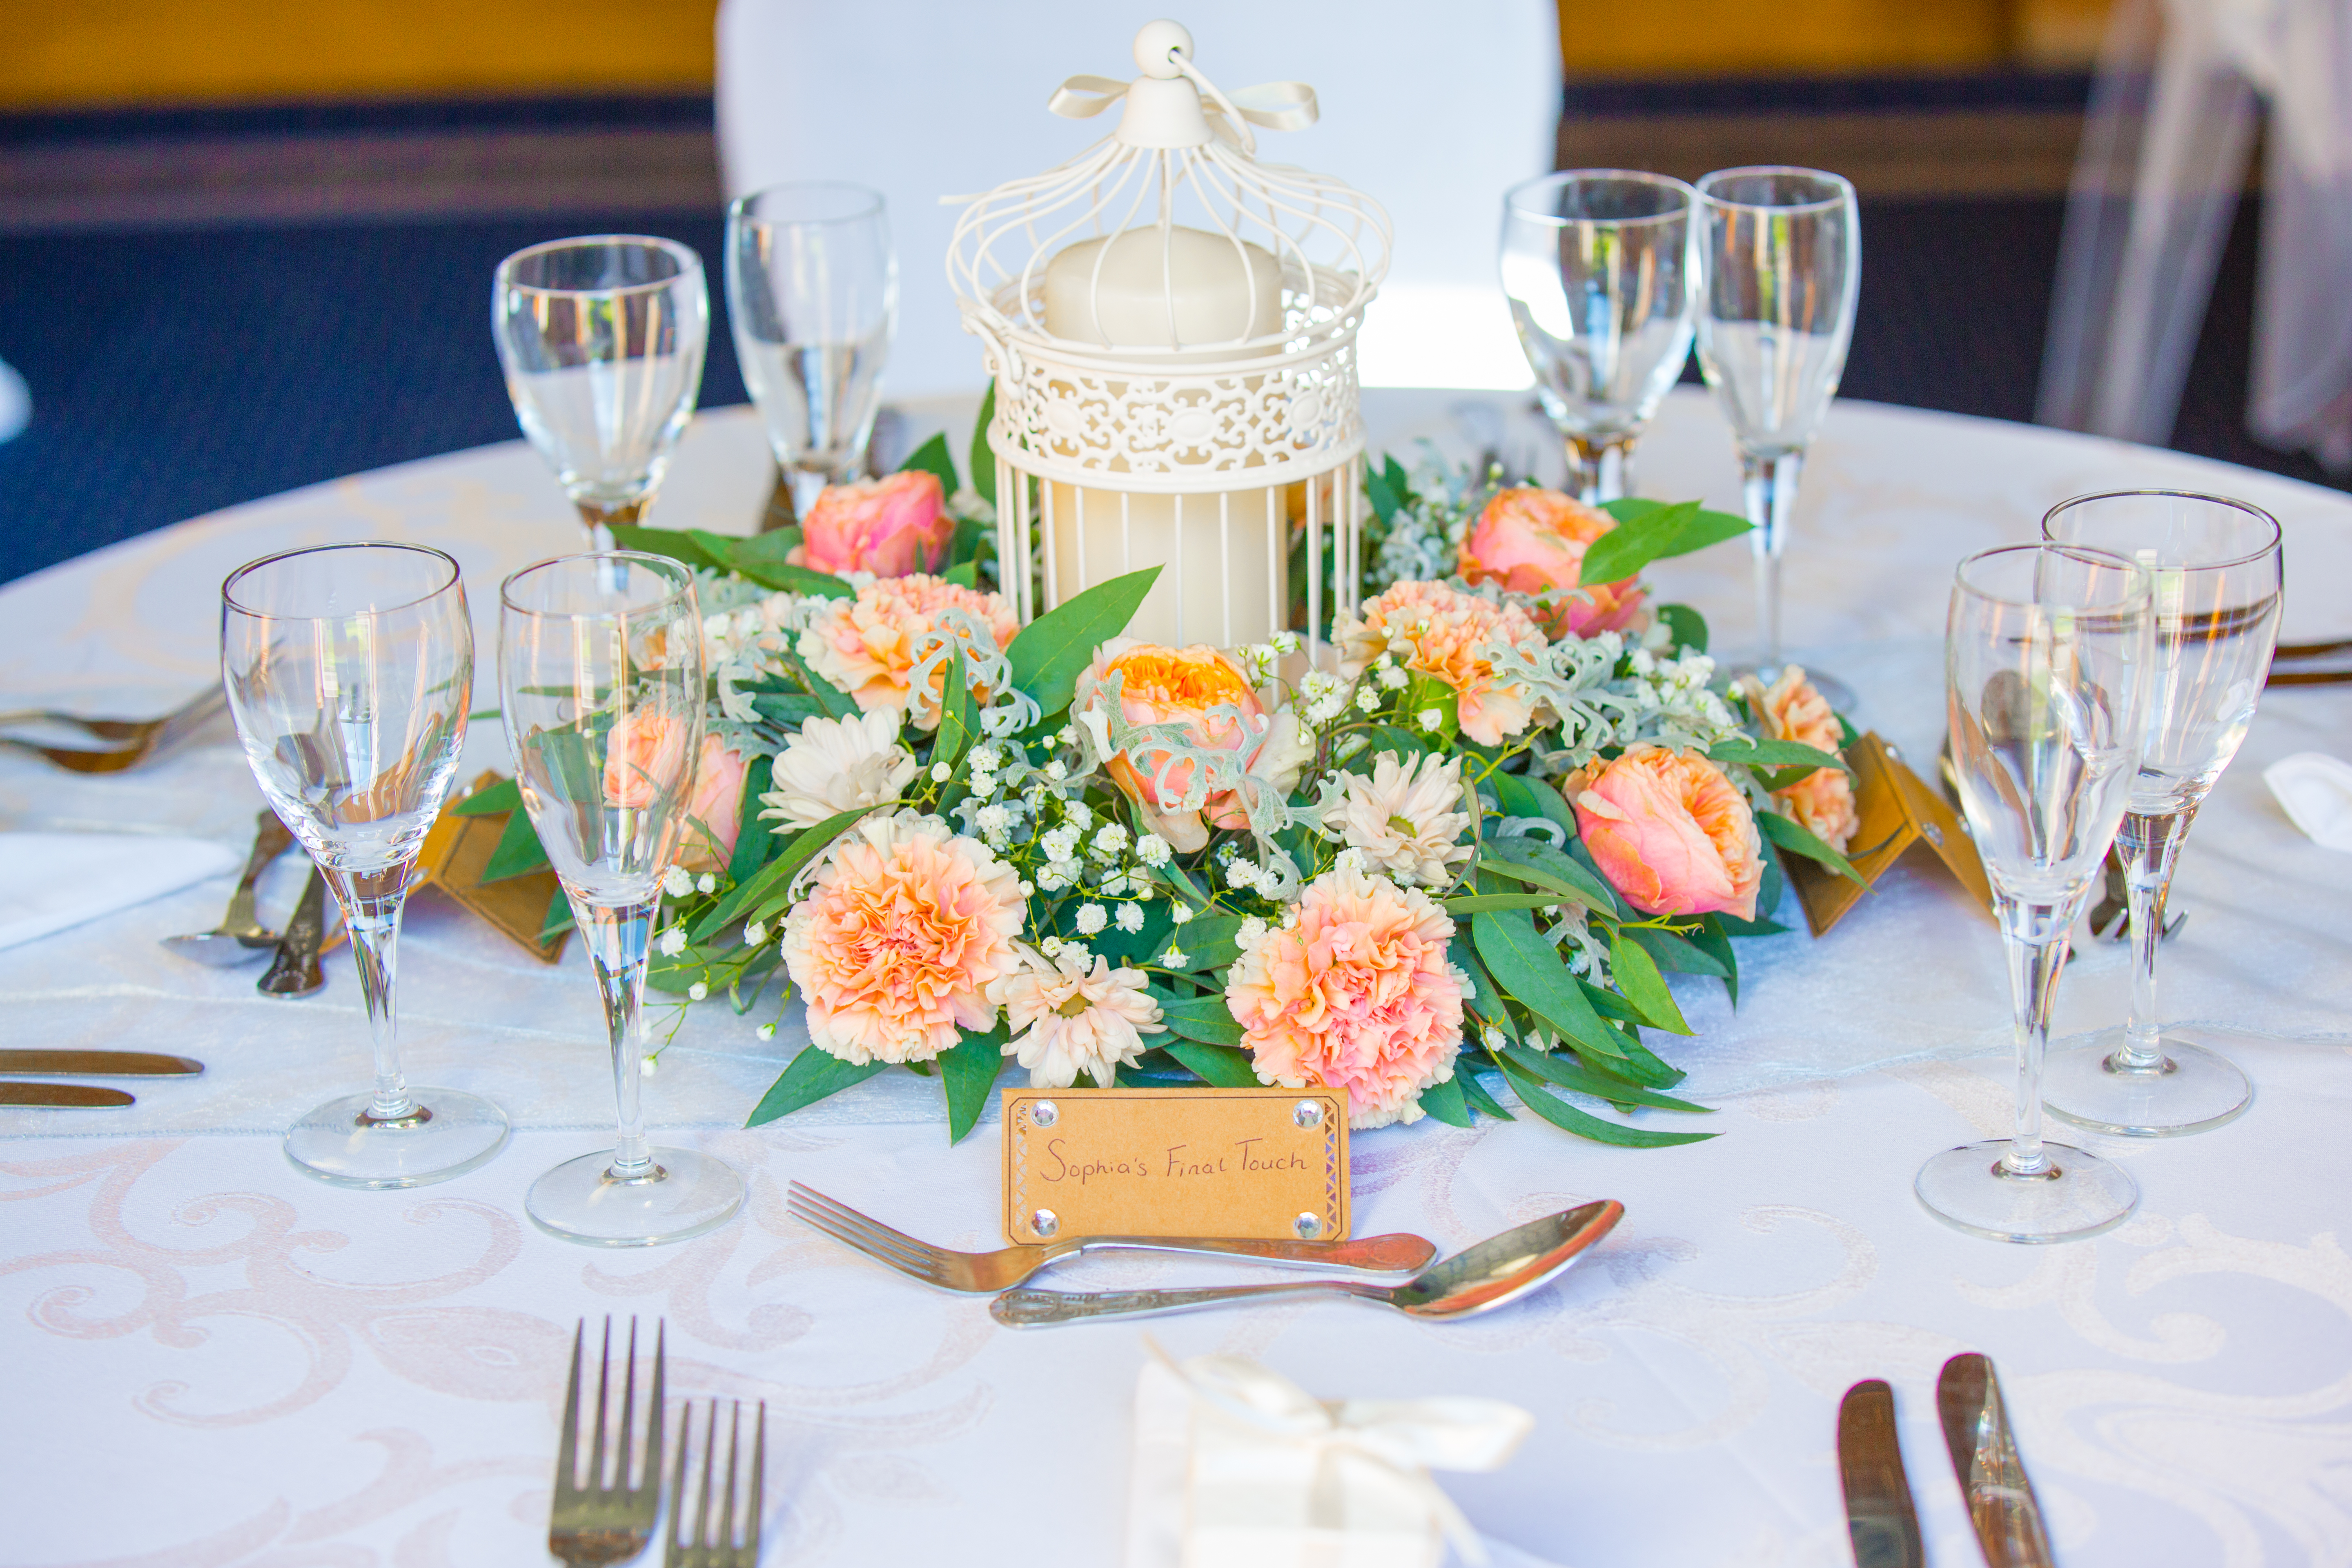 Cream Birdcage With Fresh Flower Reef – Wedding Venue Styling- Sophia's Final Touch- Wedding & Event Decoration